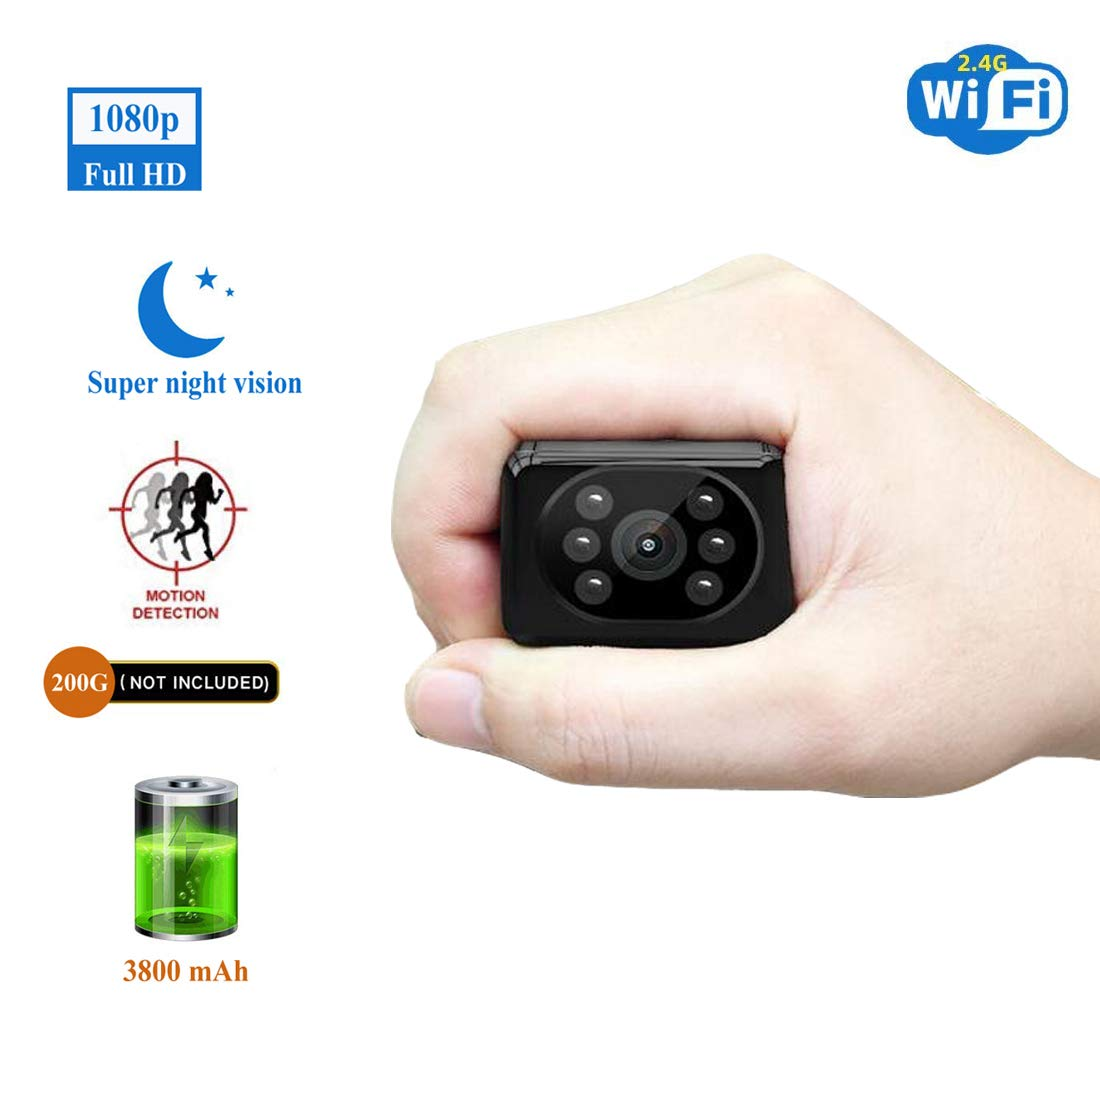 Spy Camera Wireless Hidden HD1080P WiFi Indoor Home Small Security Camera Portable Nanny Cam with APP Night Vision Motion Detection 155° Wide View Angle by Altocam